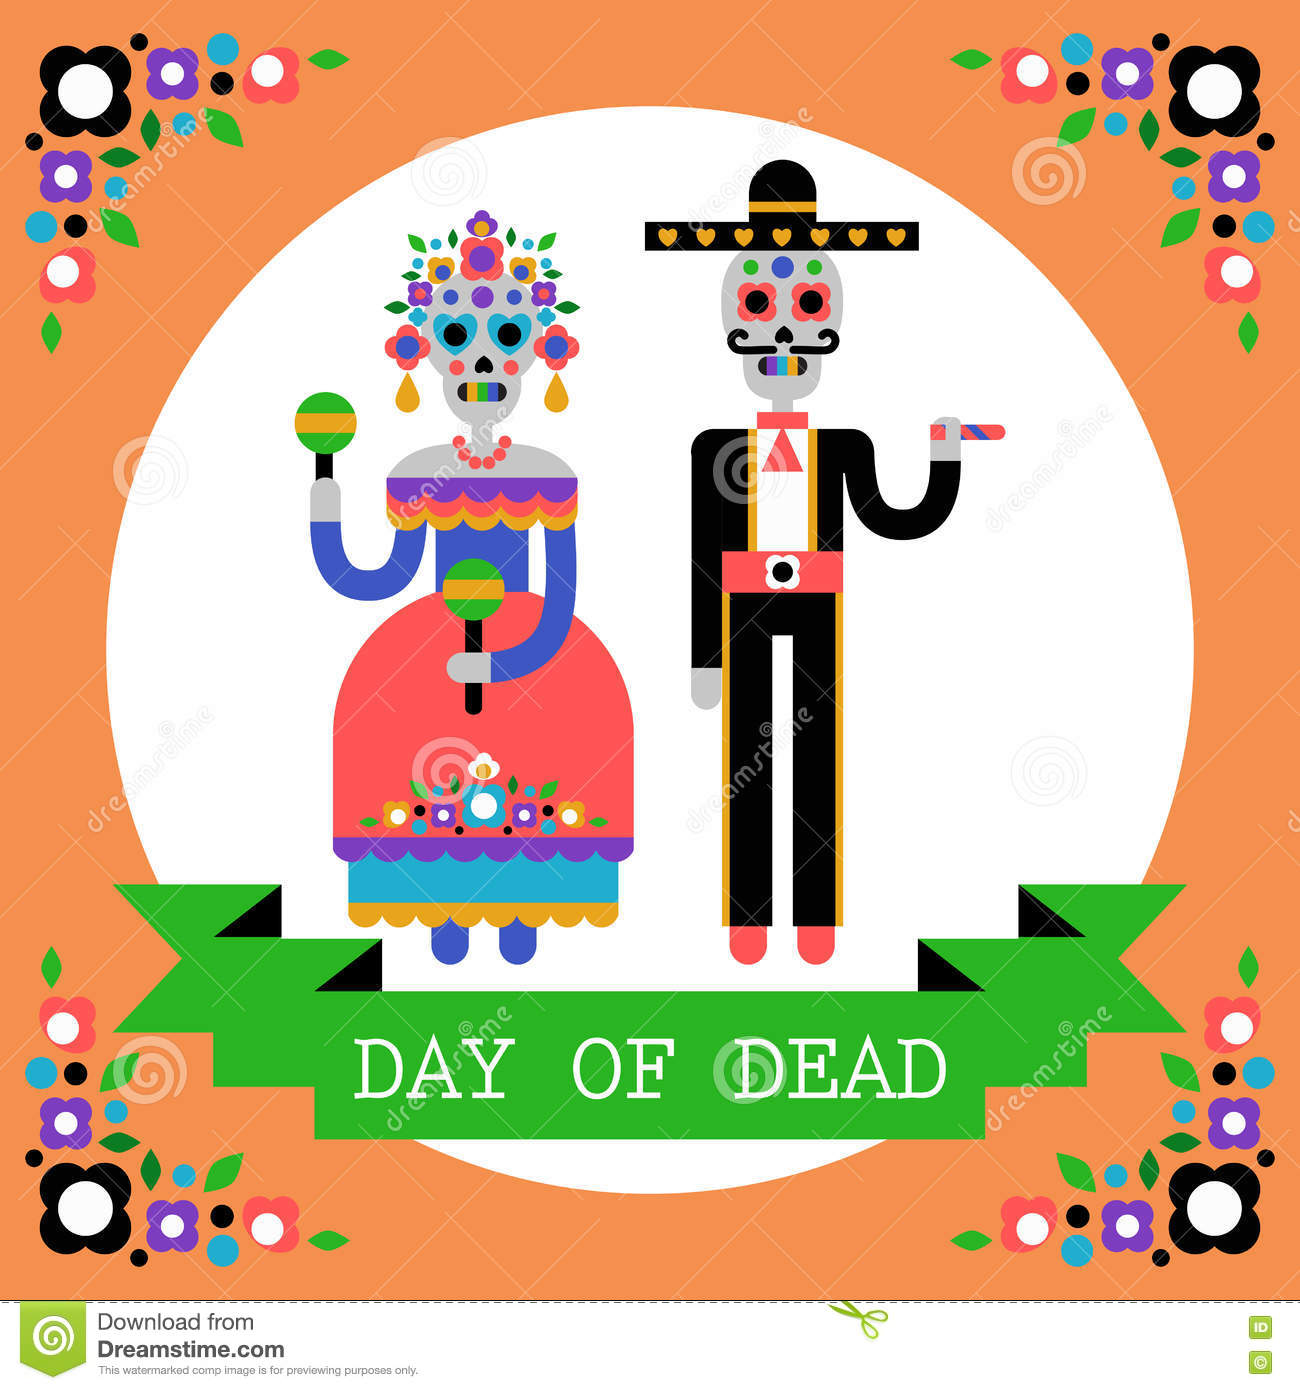 Download Day Of The Dead (Dia De Los Muertos). Mexican Holiday. Stock Vector - Illustration of banner, couple: 78262121